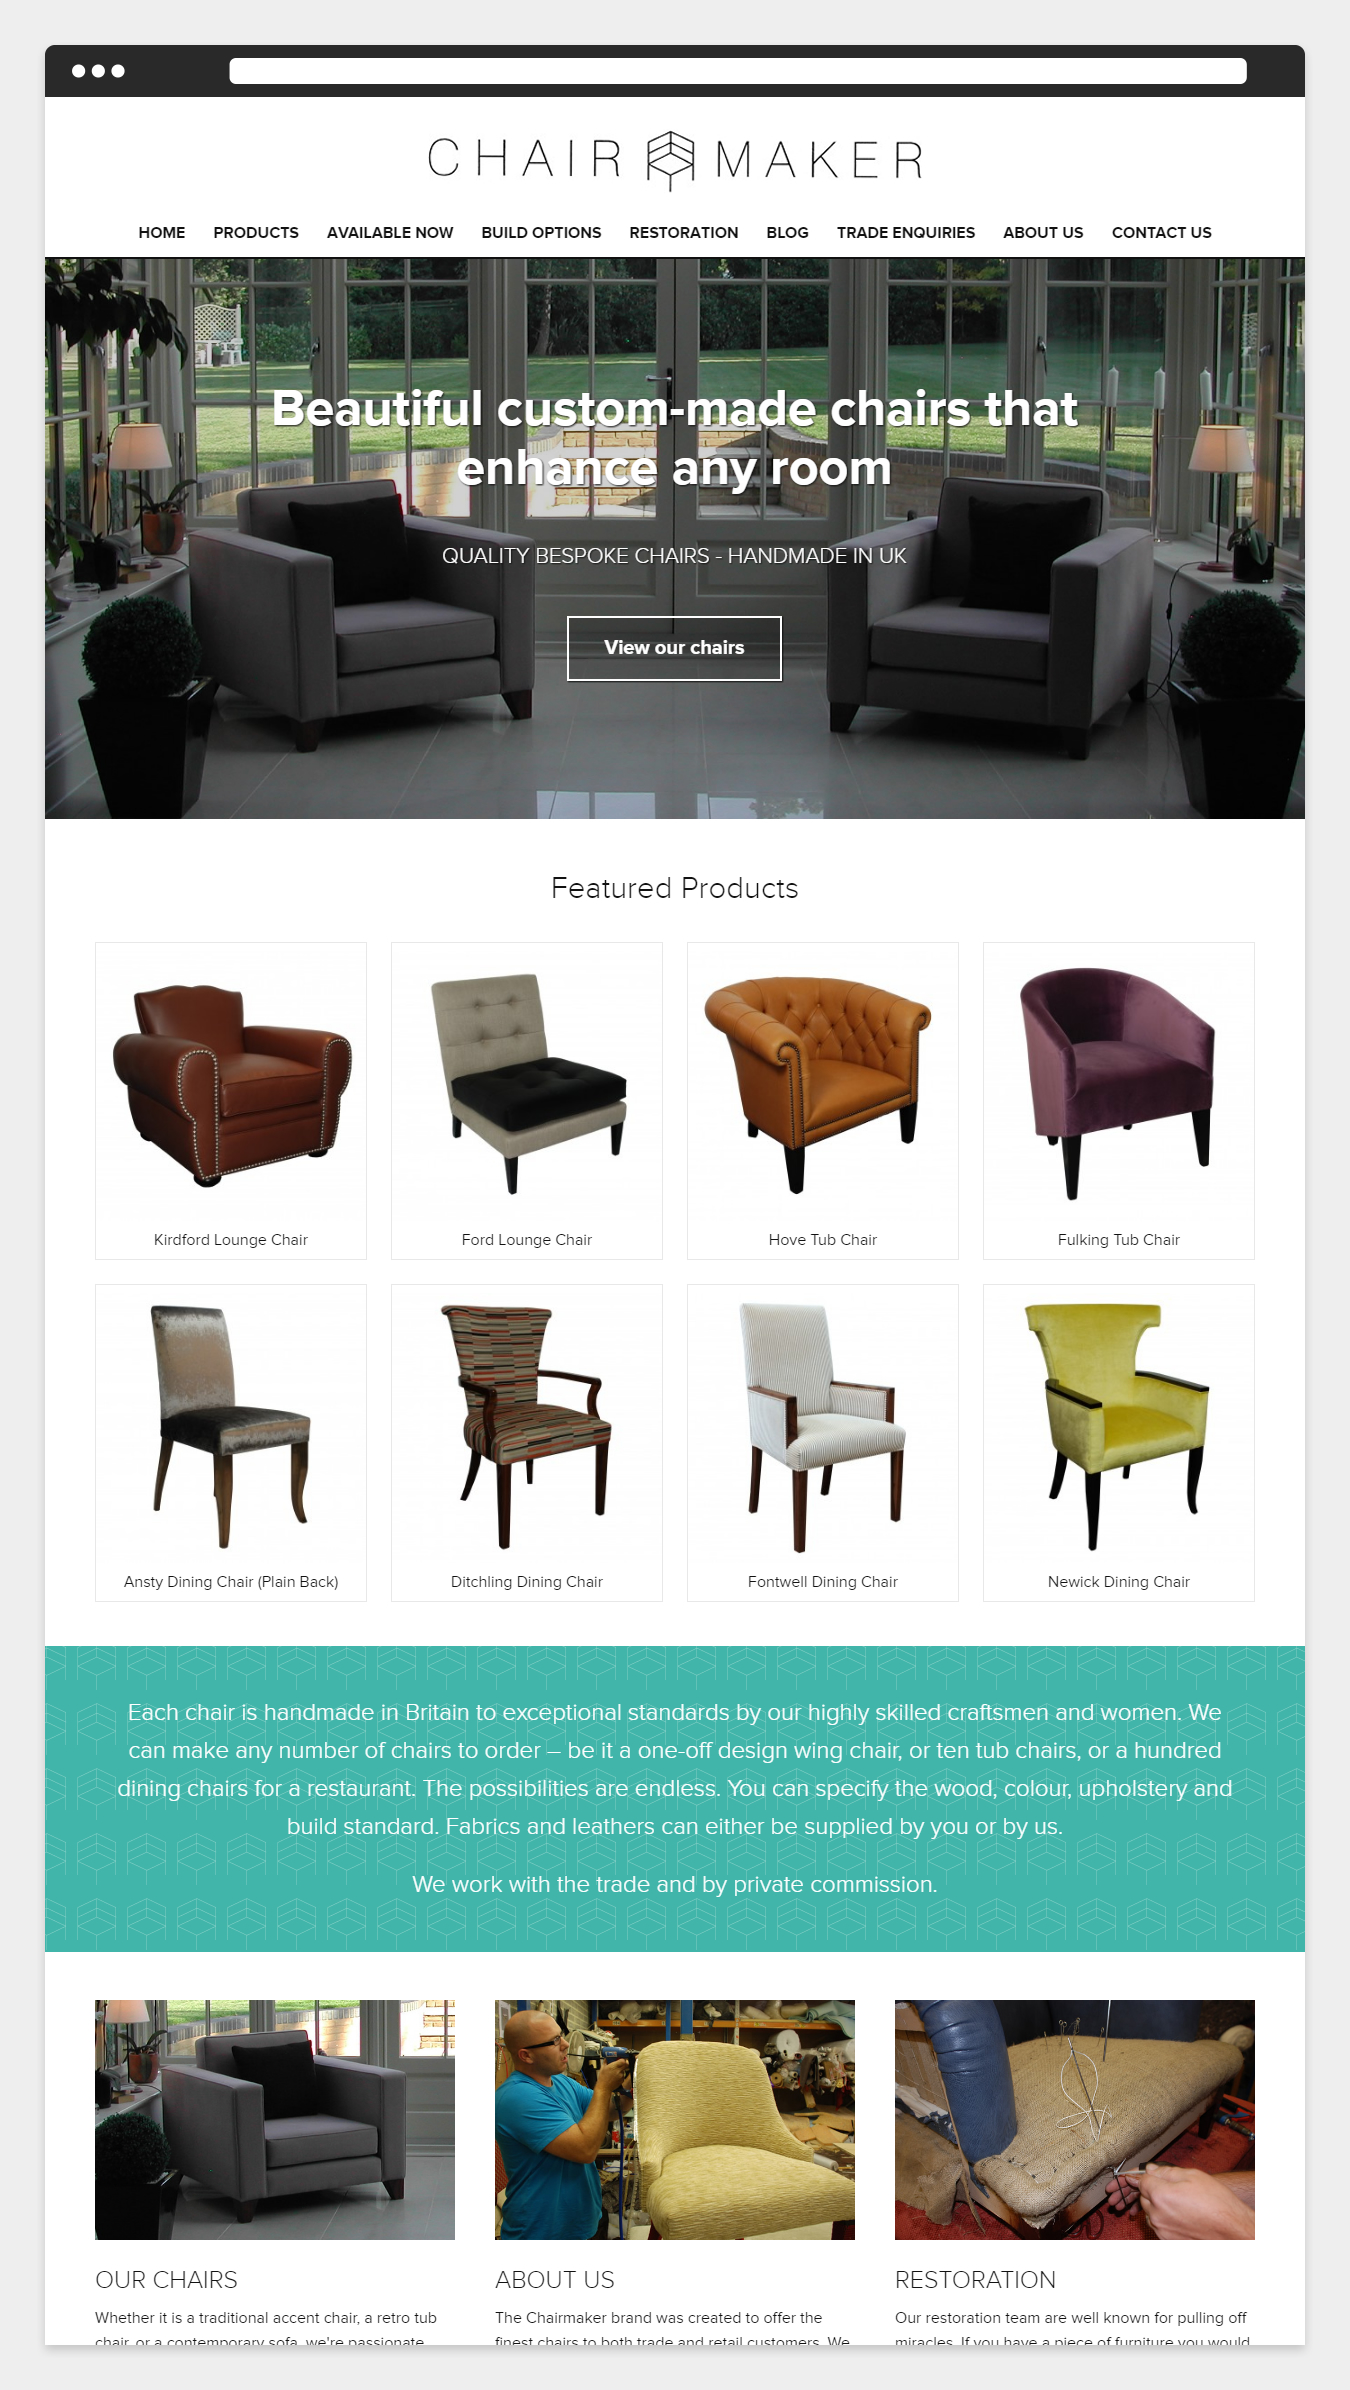 The Home page design on the Chairmaker website